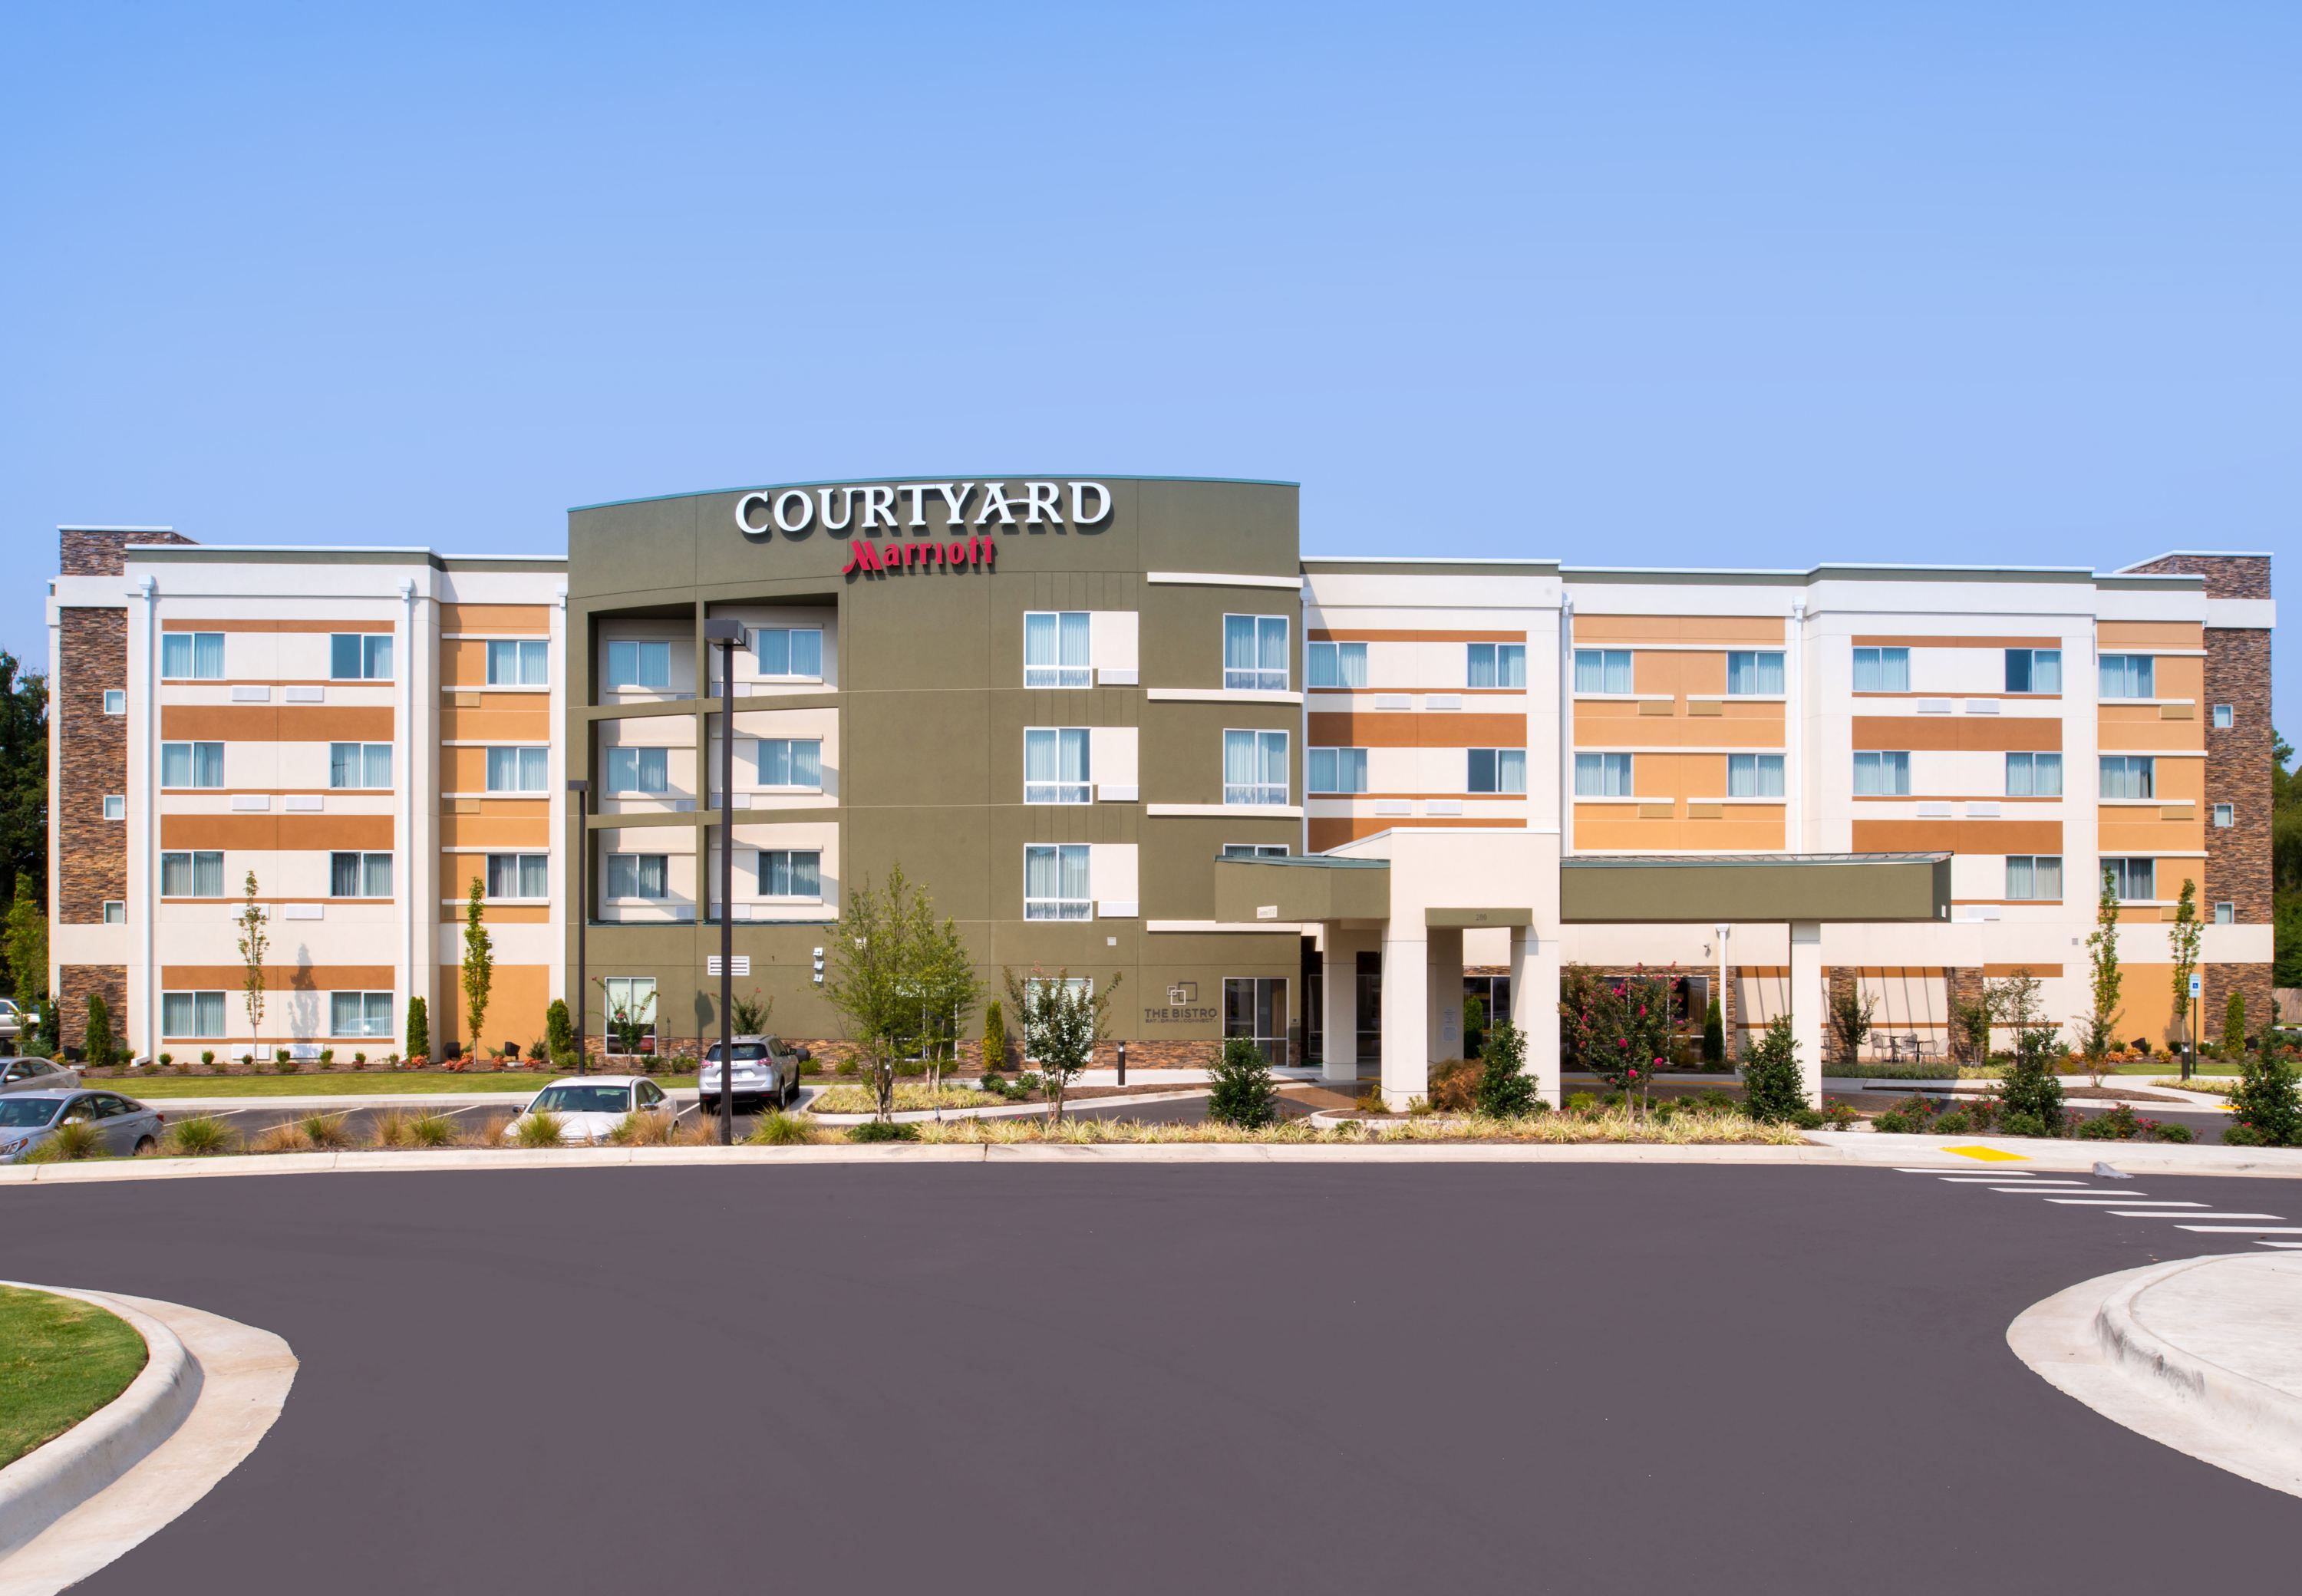 Courtyard by Marriott Hot Springs - Hot Springs, AR 71913 - (501)651-4366 | ShowMeLocal.com